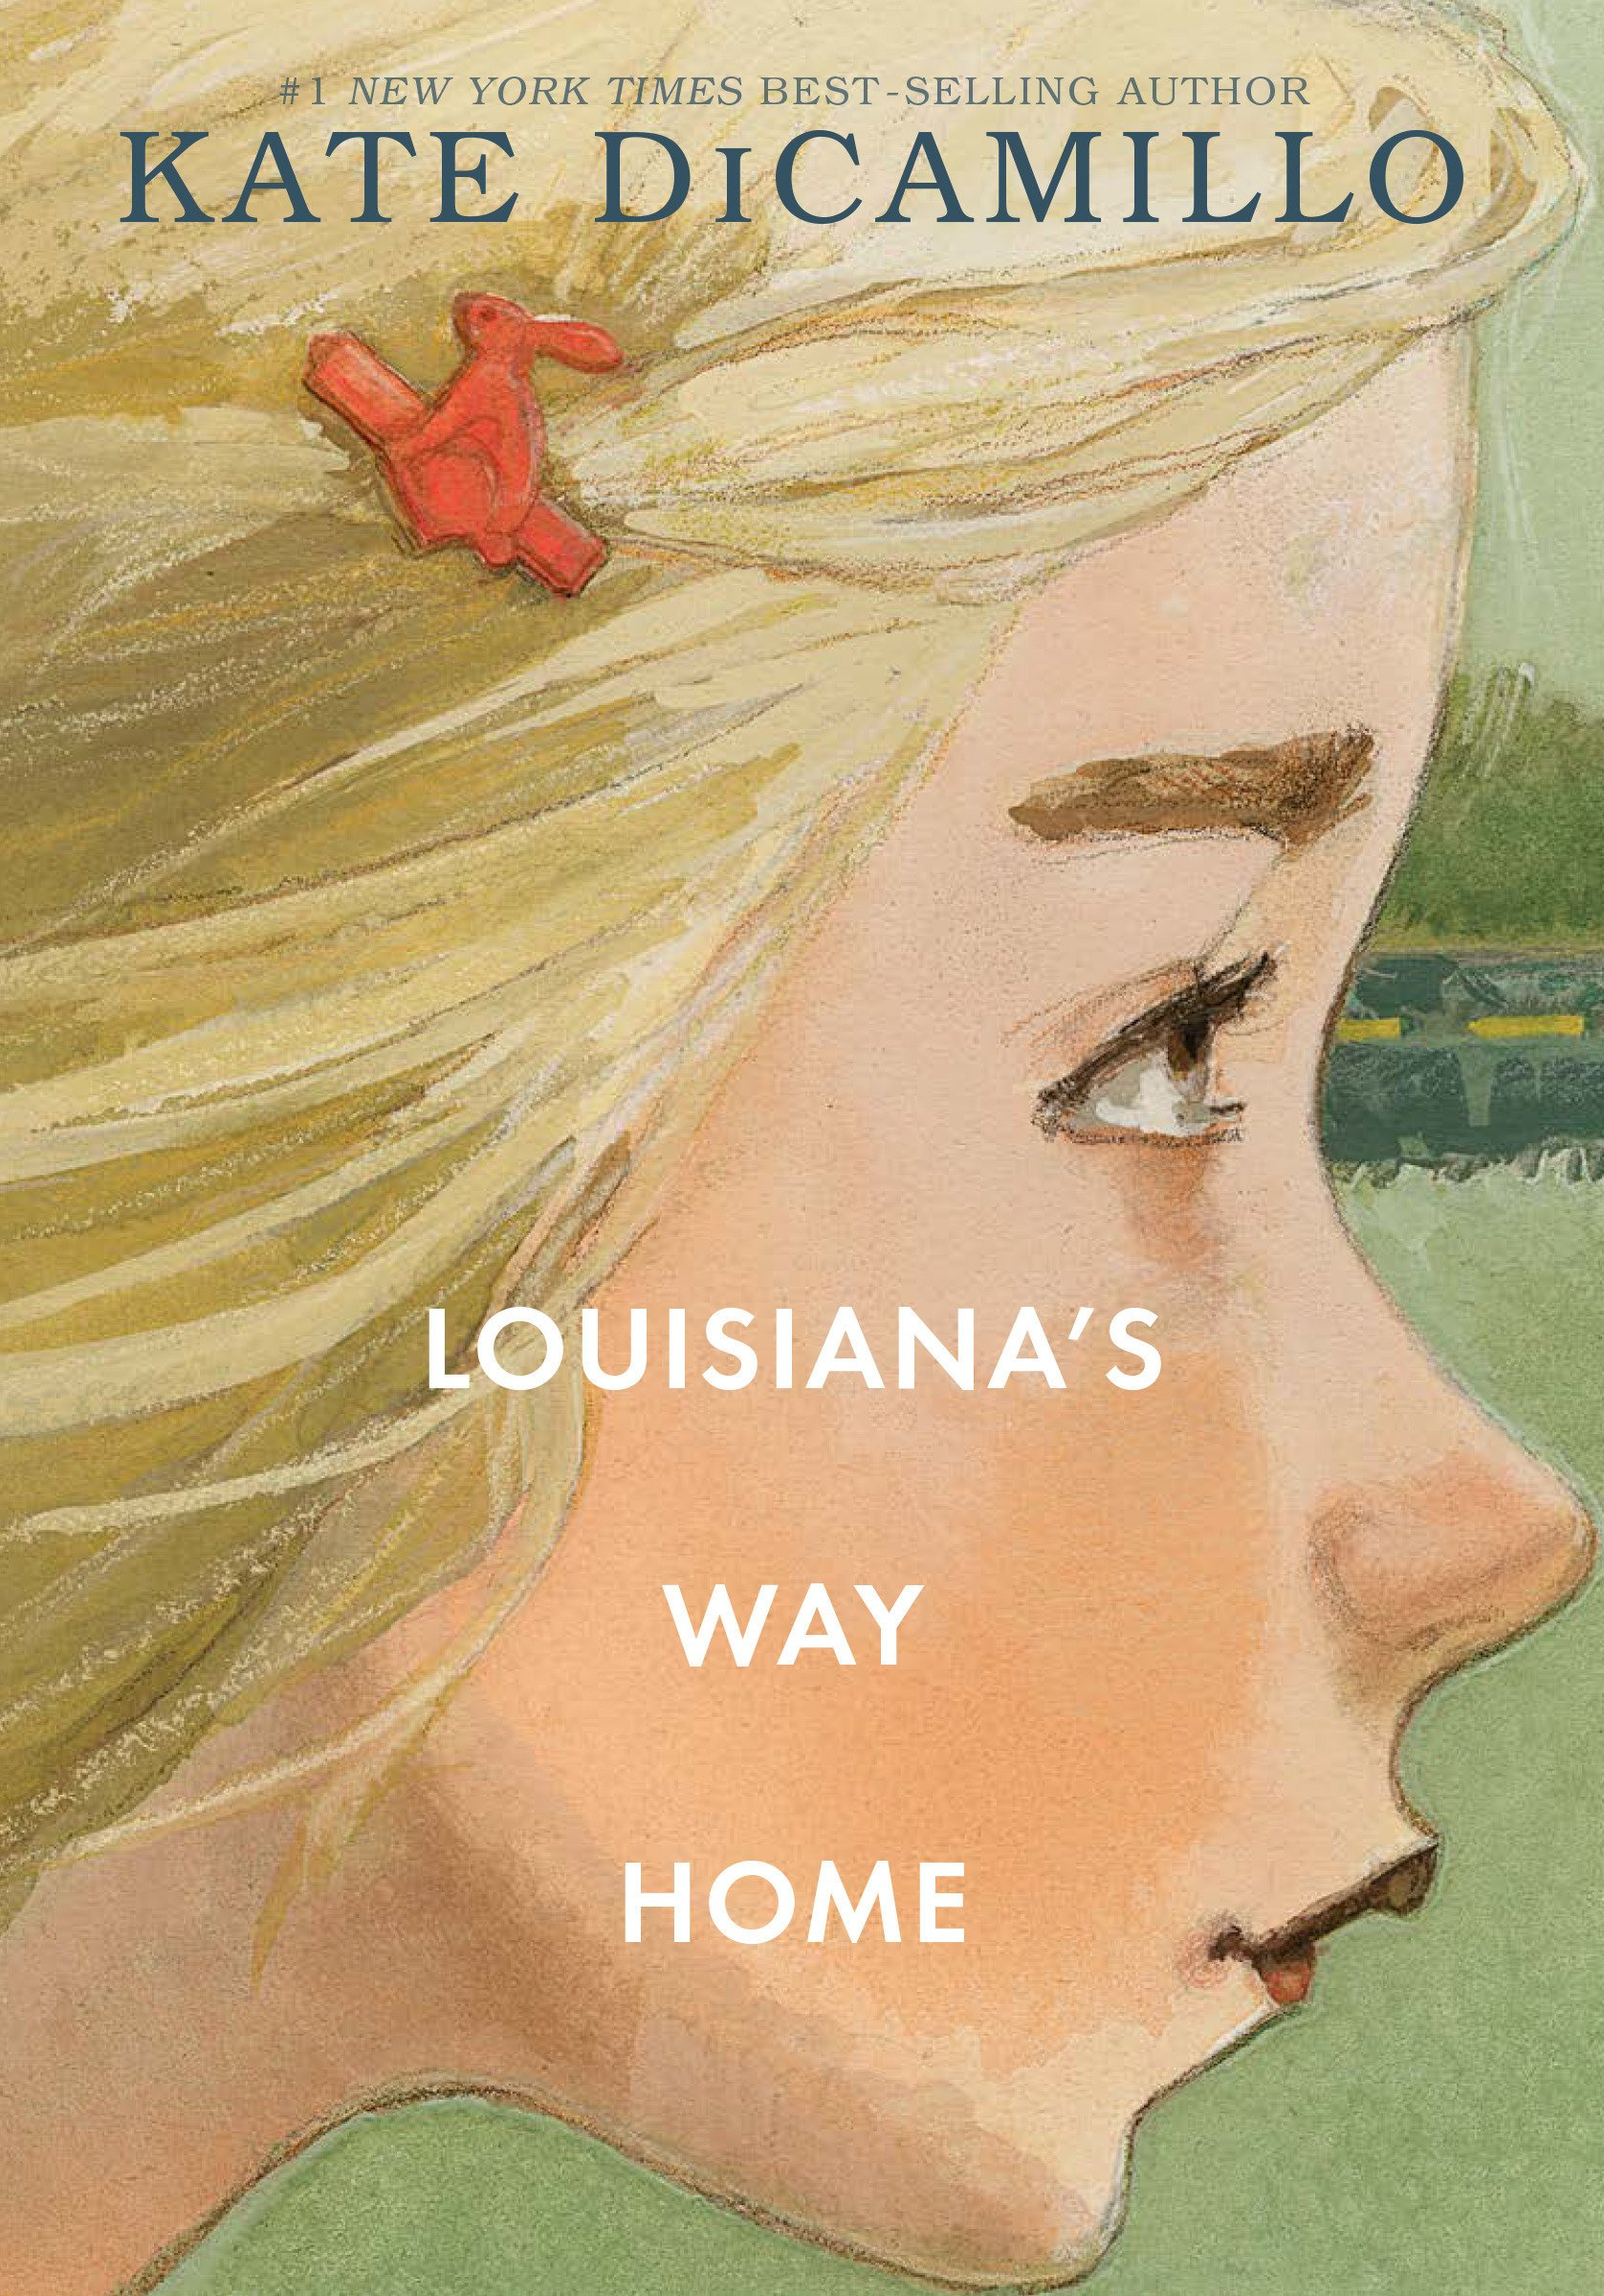 Kate DiCamillo on